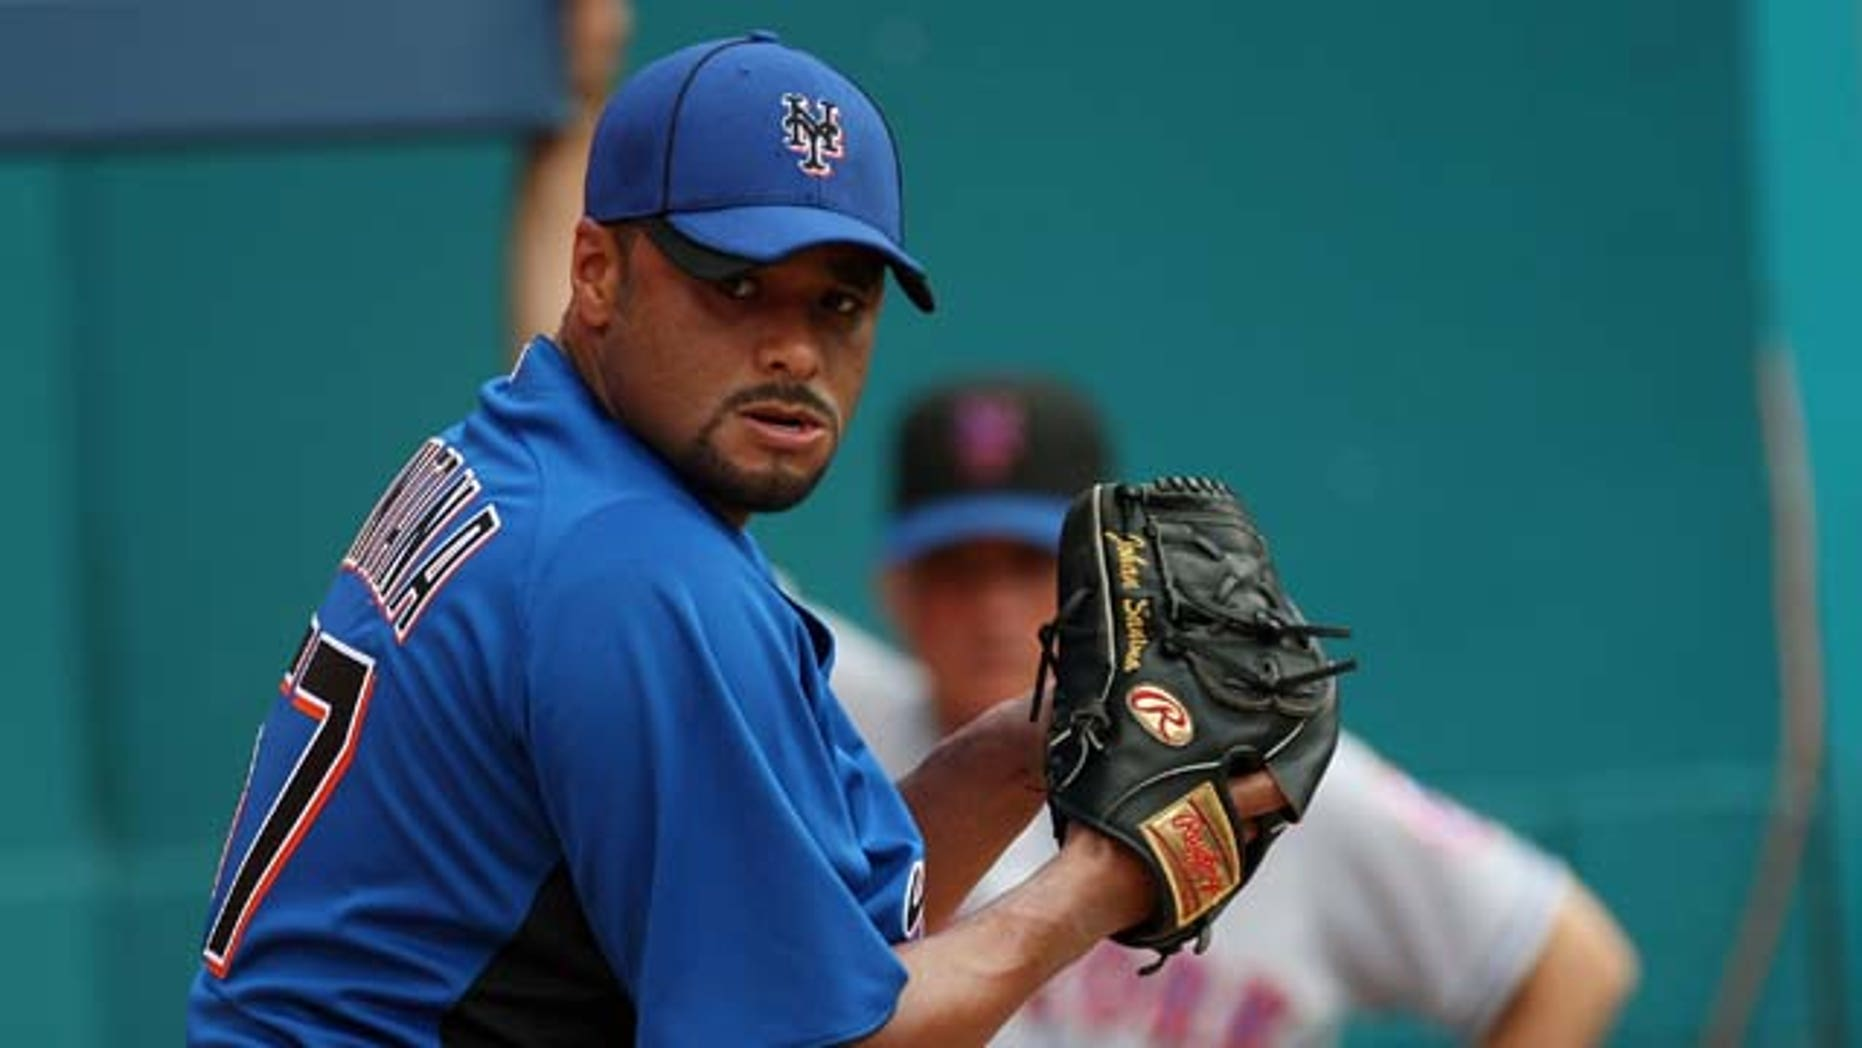 July 24, 2011: Johan Santana #57 of the New York Mets pitches in the bullpen as Manager Terry Collins #10 looks on during a throwing session before a game against the Florida Marlins at Sun Life Stadium in Miami Gardens, Fla.